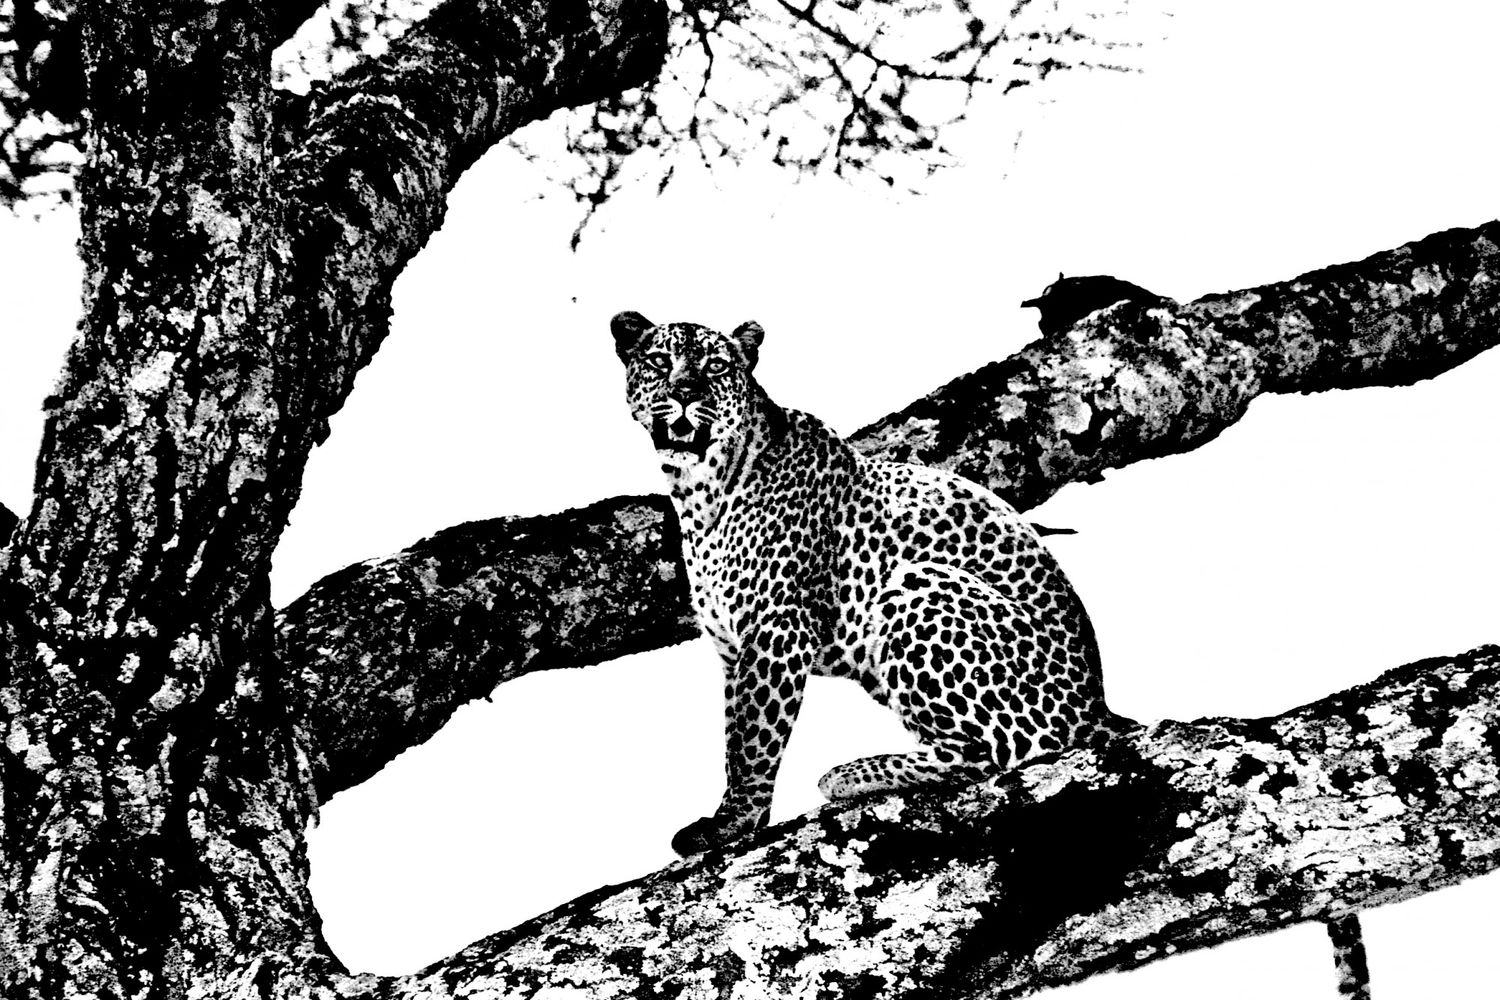 Leopard - 3, Serengeti 2016   Edition 1 of 2